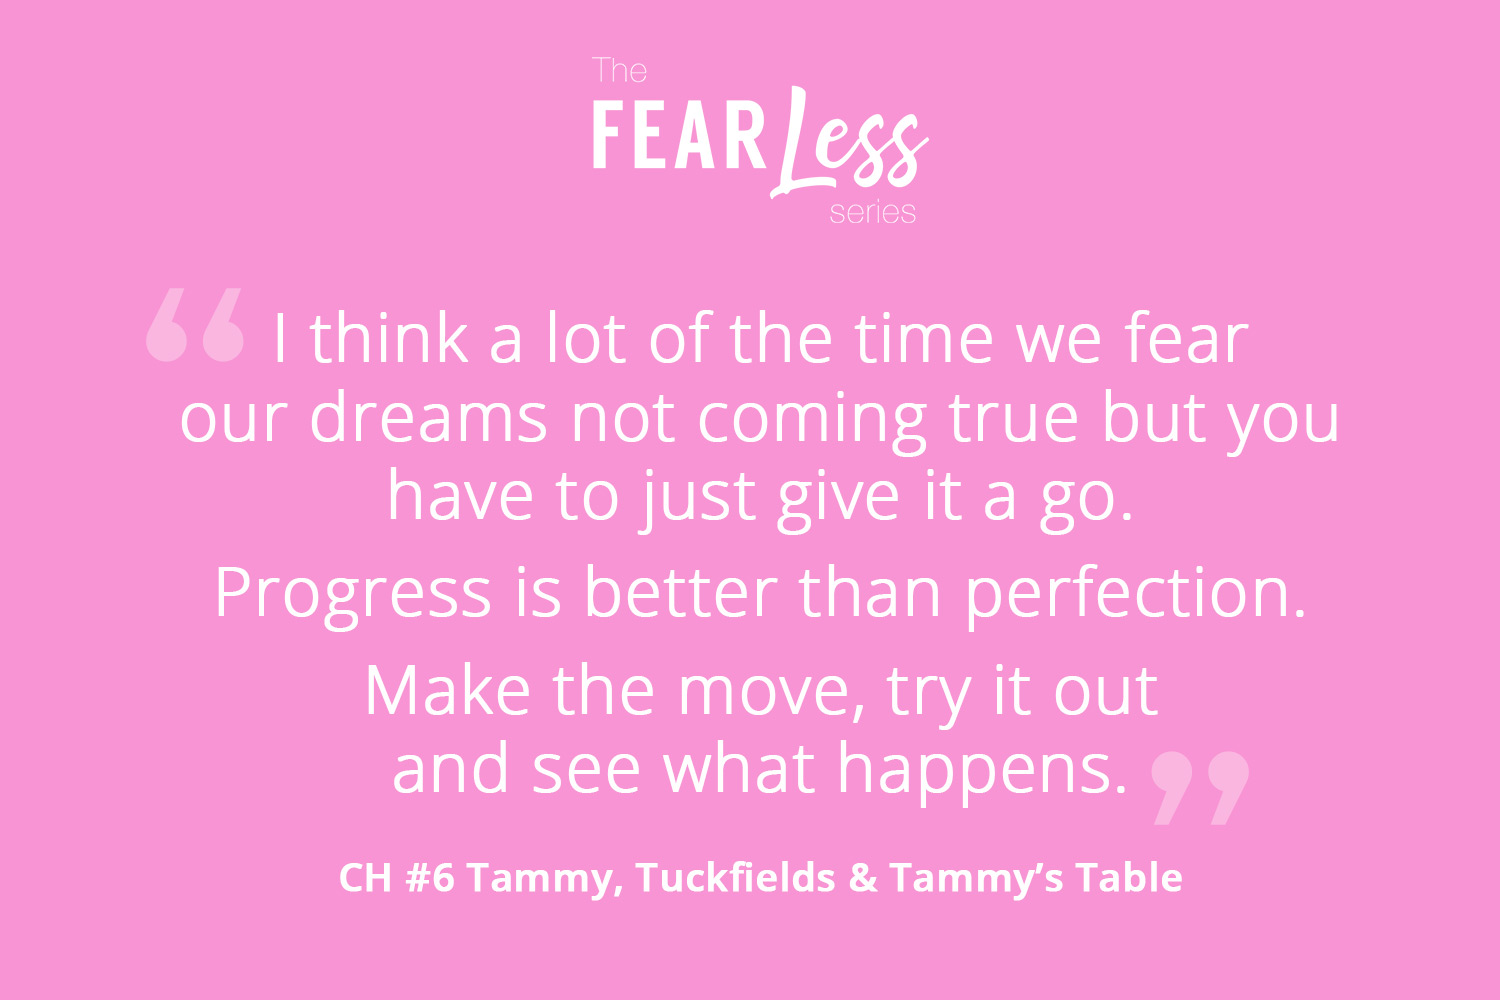 Tuckfields - Fear Less Series - Chapter 6